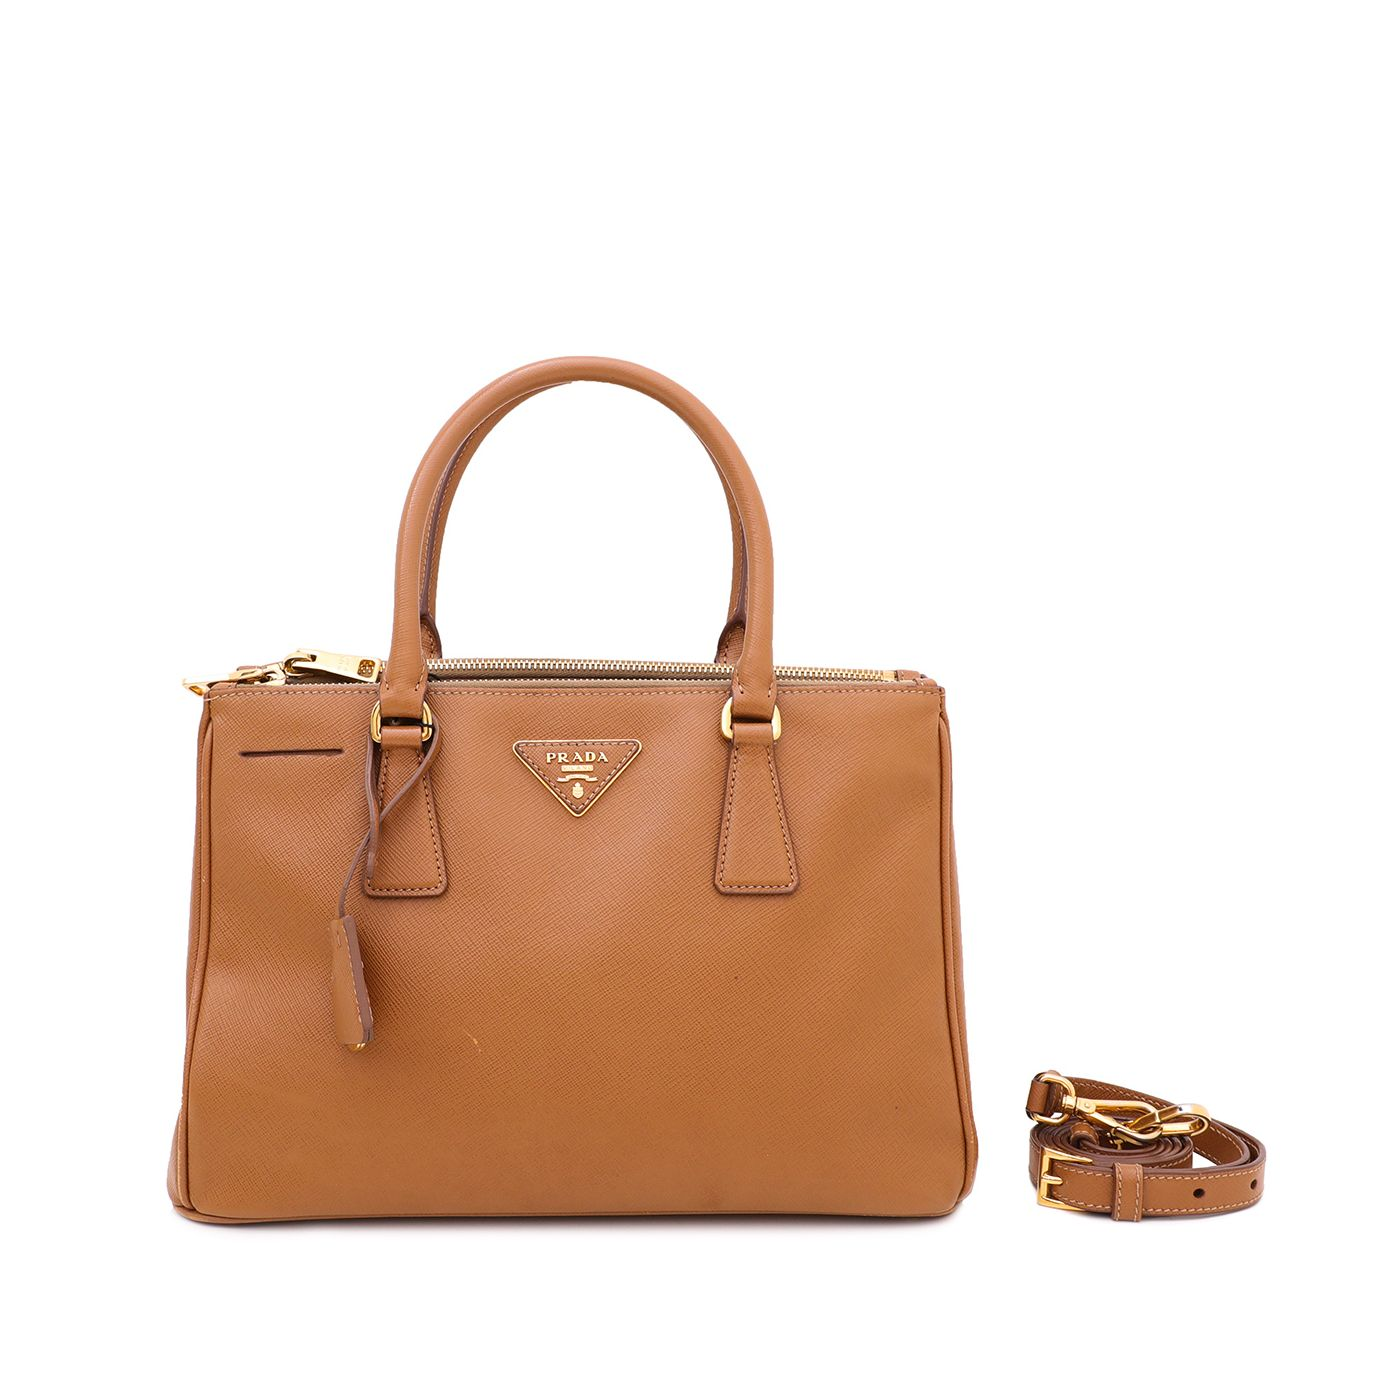 Prada Caramel Galleria Lux Bag Small